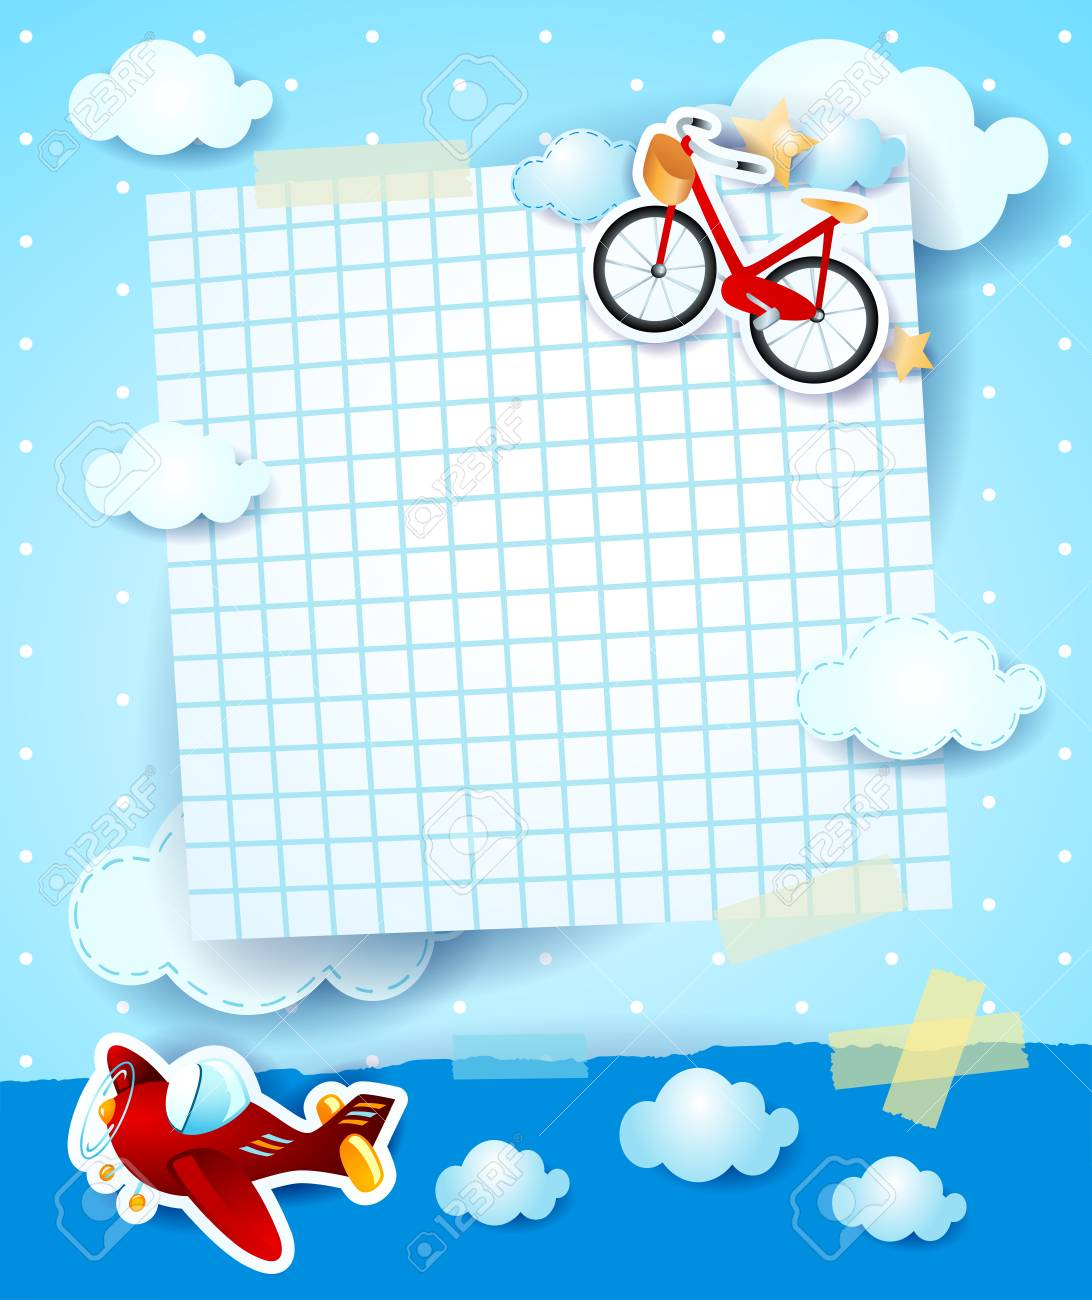 Baby shower invitation with airplane and bike vector illustration baby shower invitation with airplane and bike vector illustration stock vector 97714622 filmwisefo